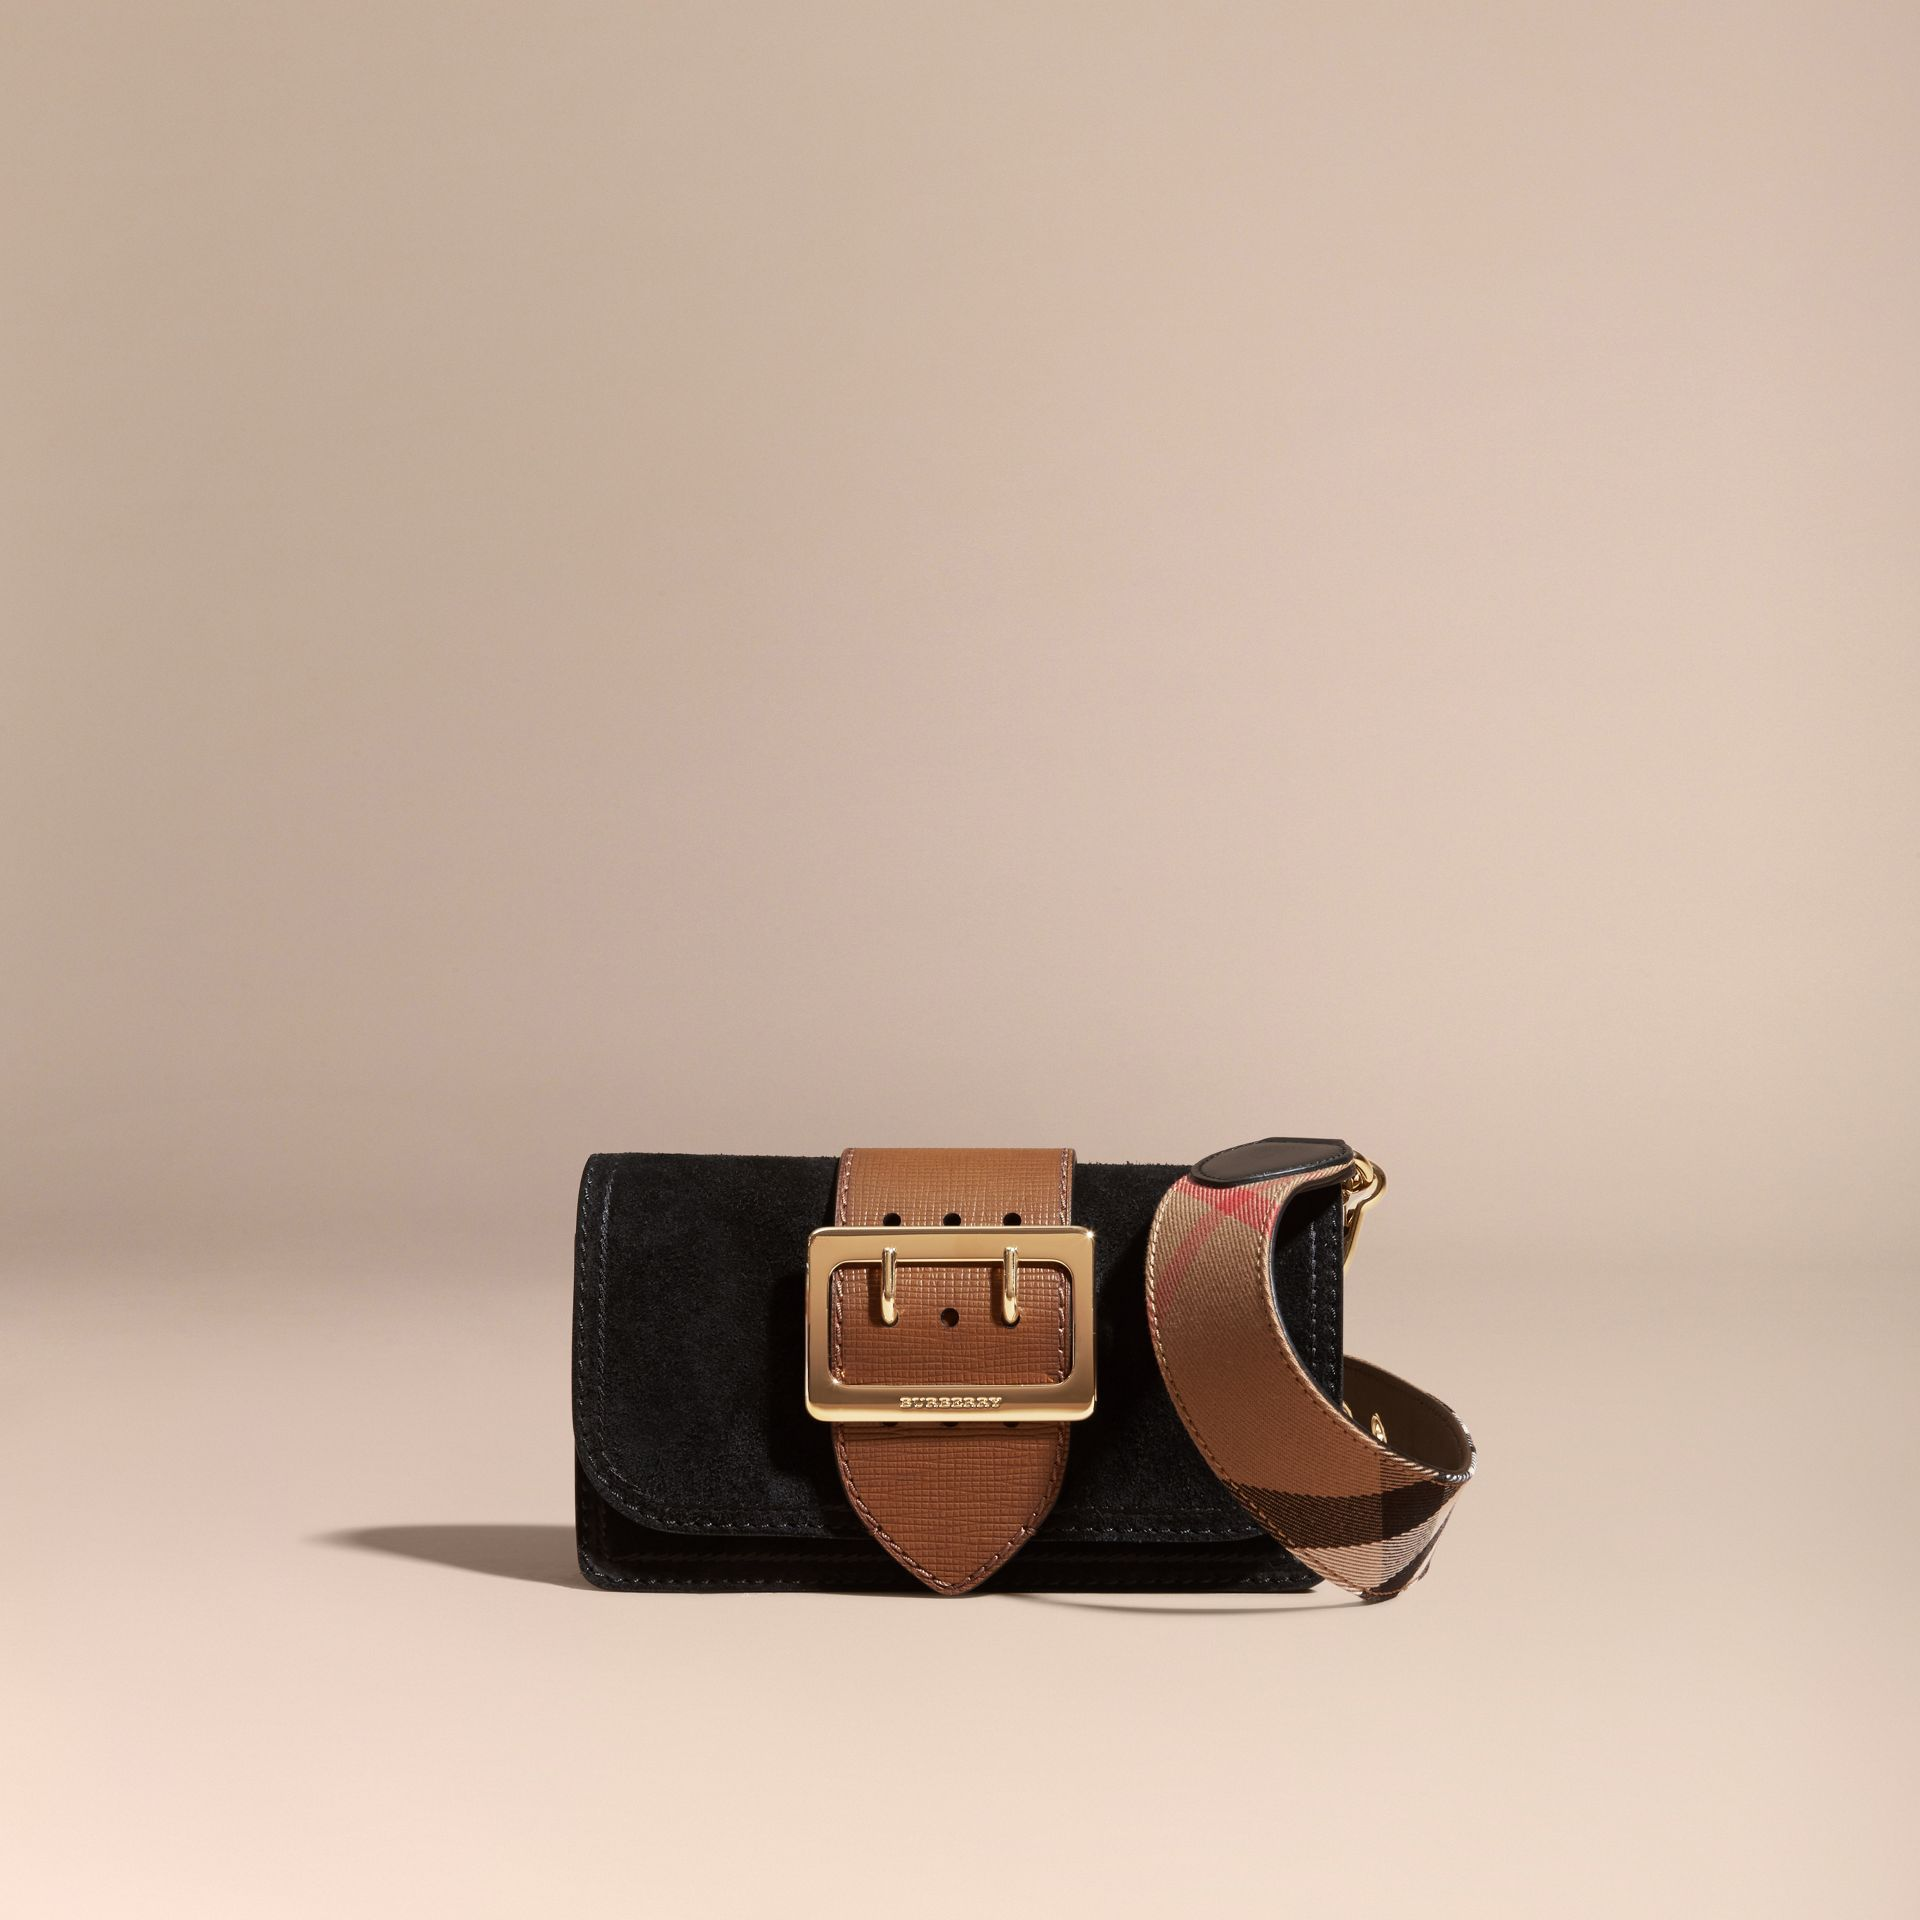 Petit sac The Buckle en cuir velours avec surpiqûres (Noir/hâle) - photo de la galerie 9